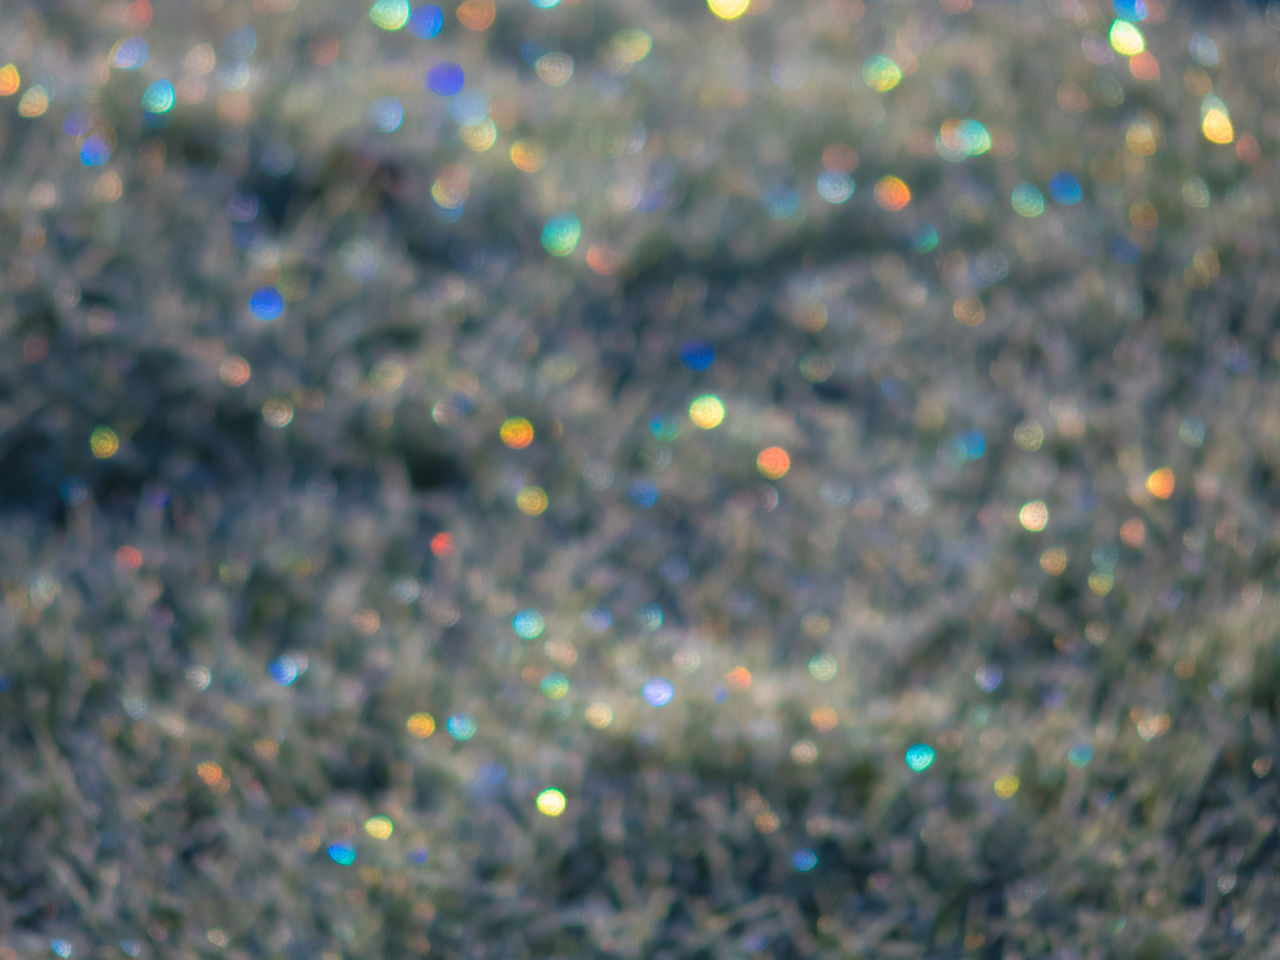 Backgrounds Bokeh Bokeh Photography Close Up Close-up Colors Detail Fairy Lights Frost Frosty Mornings Glimmer Glistening Ice Ice Crystals Plant Plant Life Winter Winter Wonderland